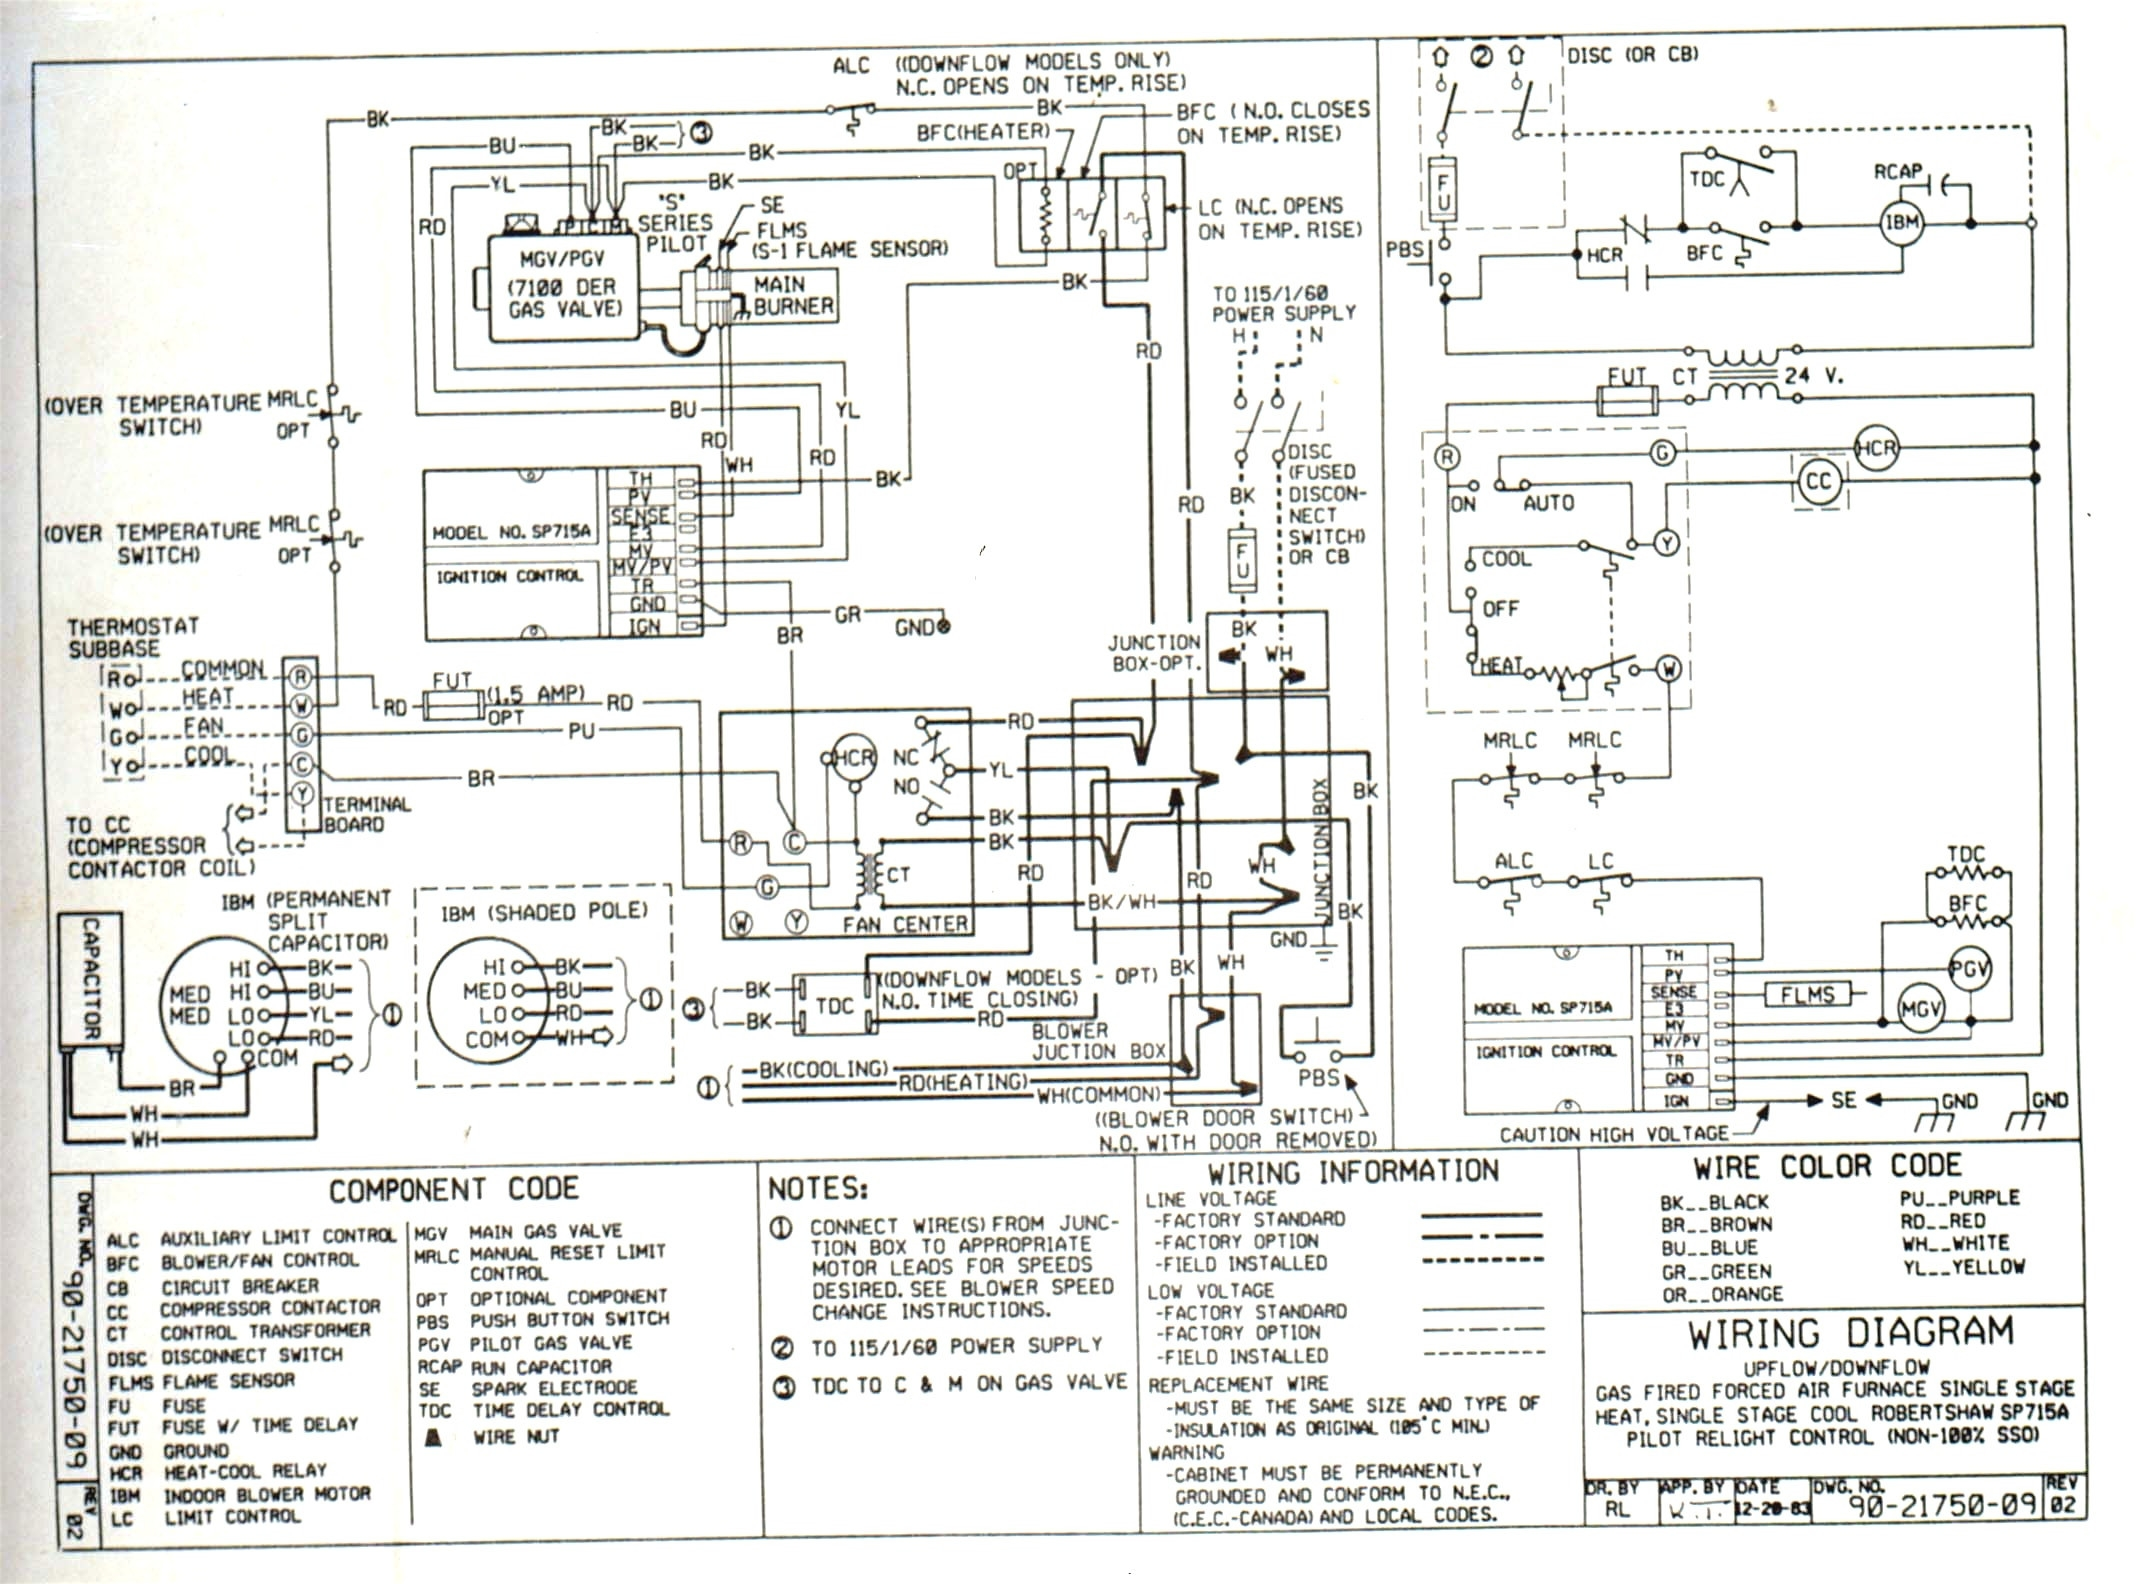 heat pump wiring diagram schematic Download-Wiring Diagram for York Heat Pump Inspirationa Hid Wiring Diagram with Relay and Capacitor Best Inspiration 2-j